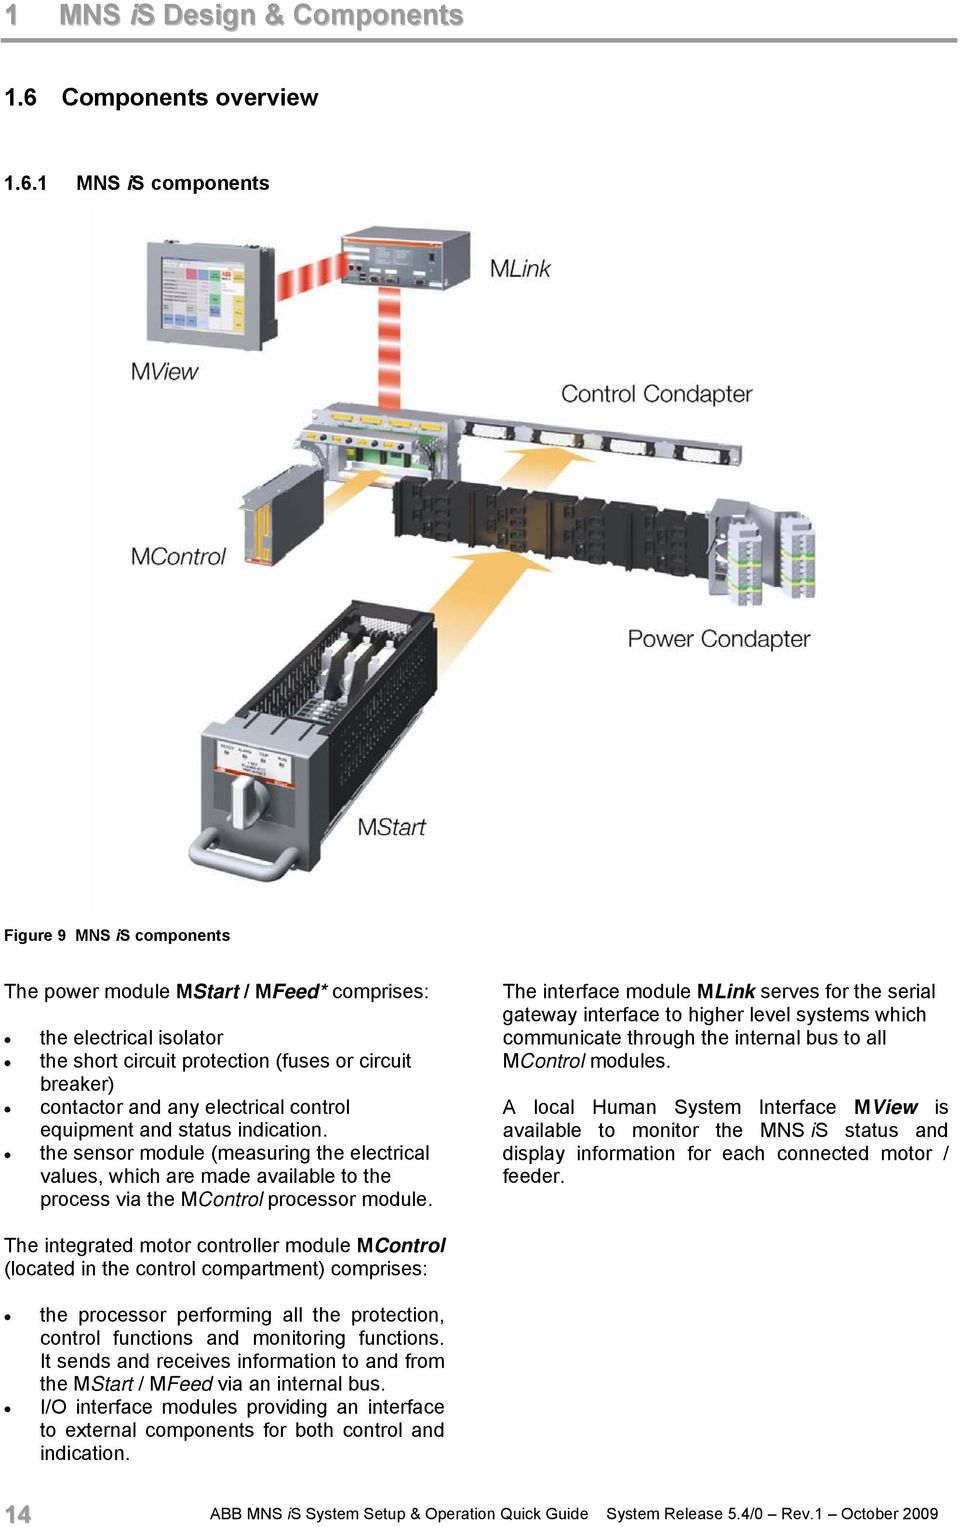 MNS is Motor Control Center System Setup and Operation Quick Guide Unicorn Cubicle Wiring Diagram on